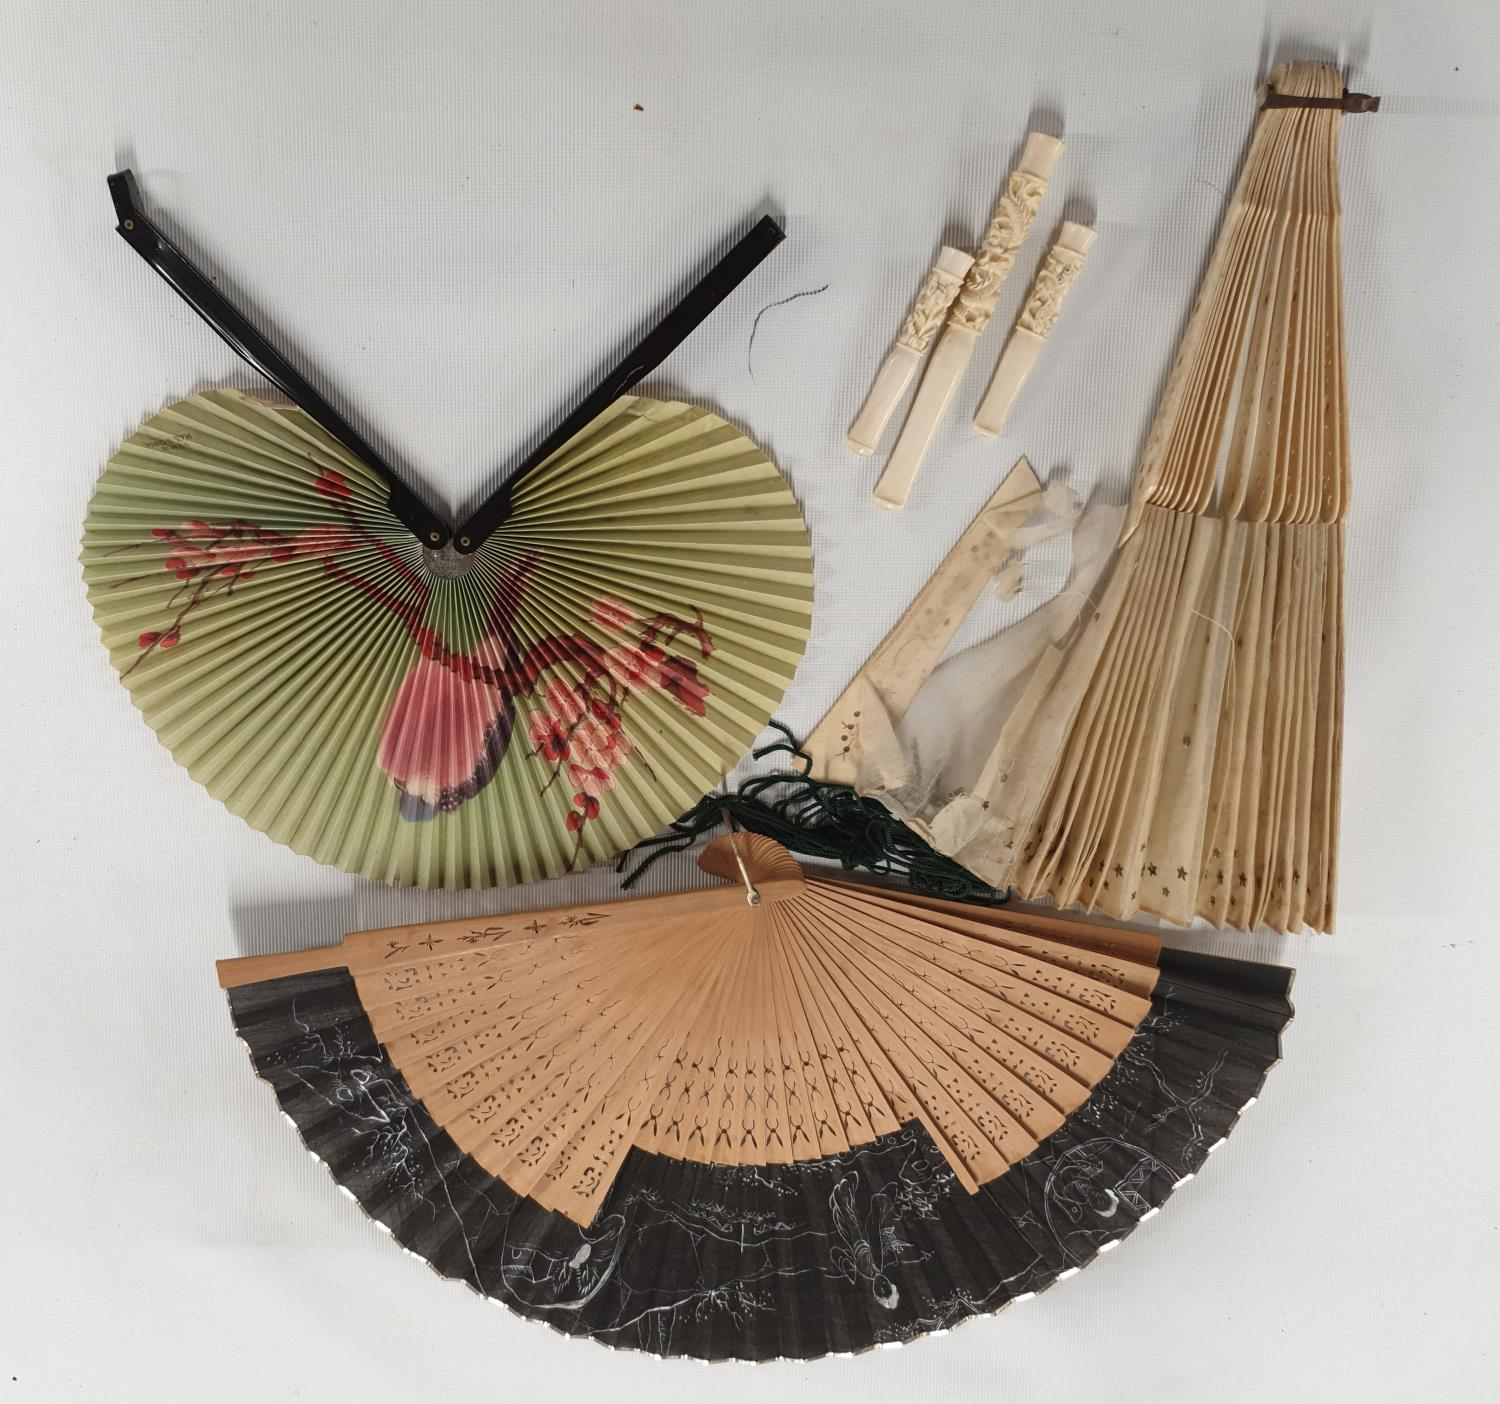 Lot 495 - A group of vintage Fans along with three Cherutes.